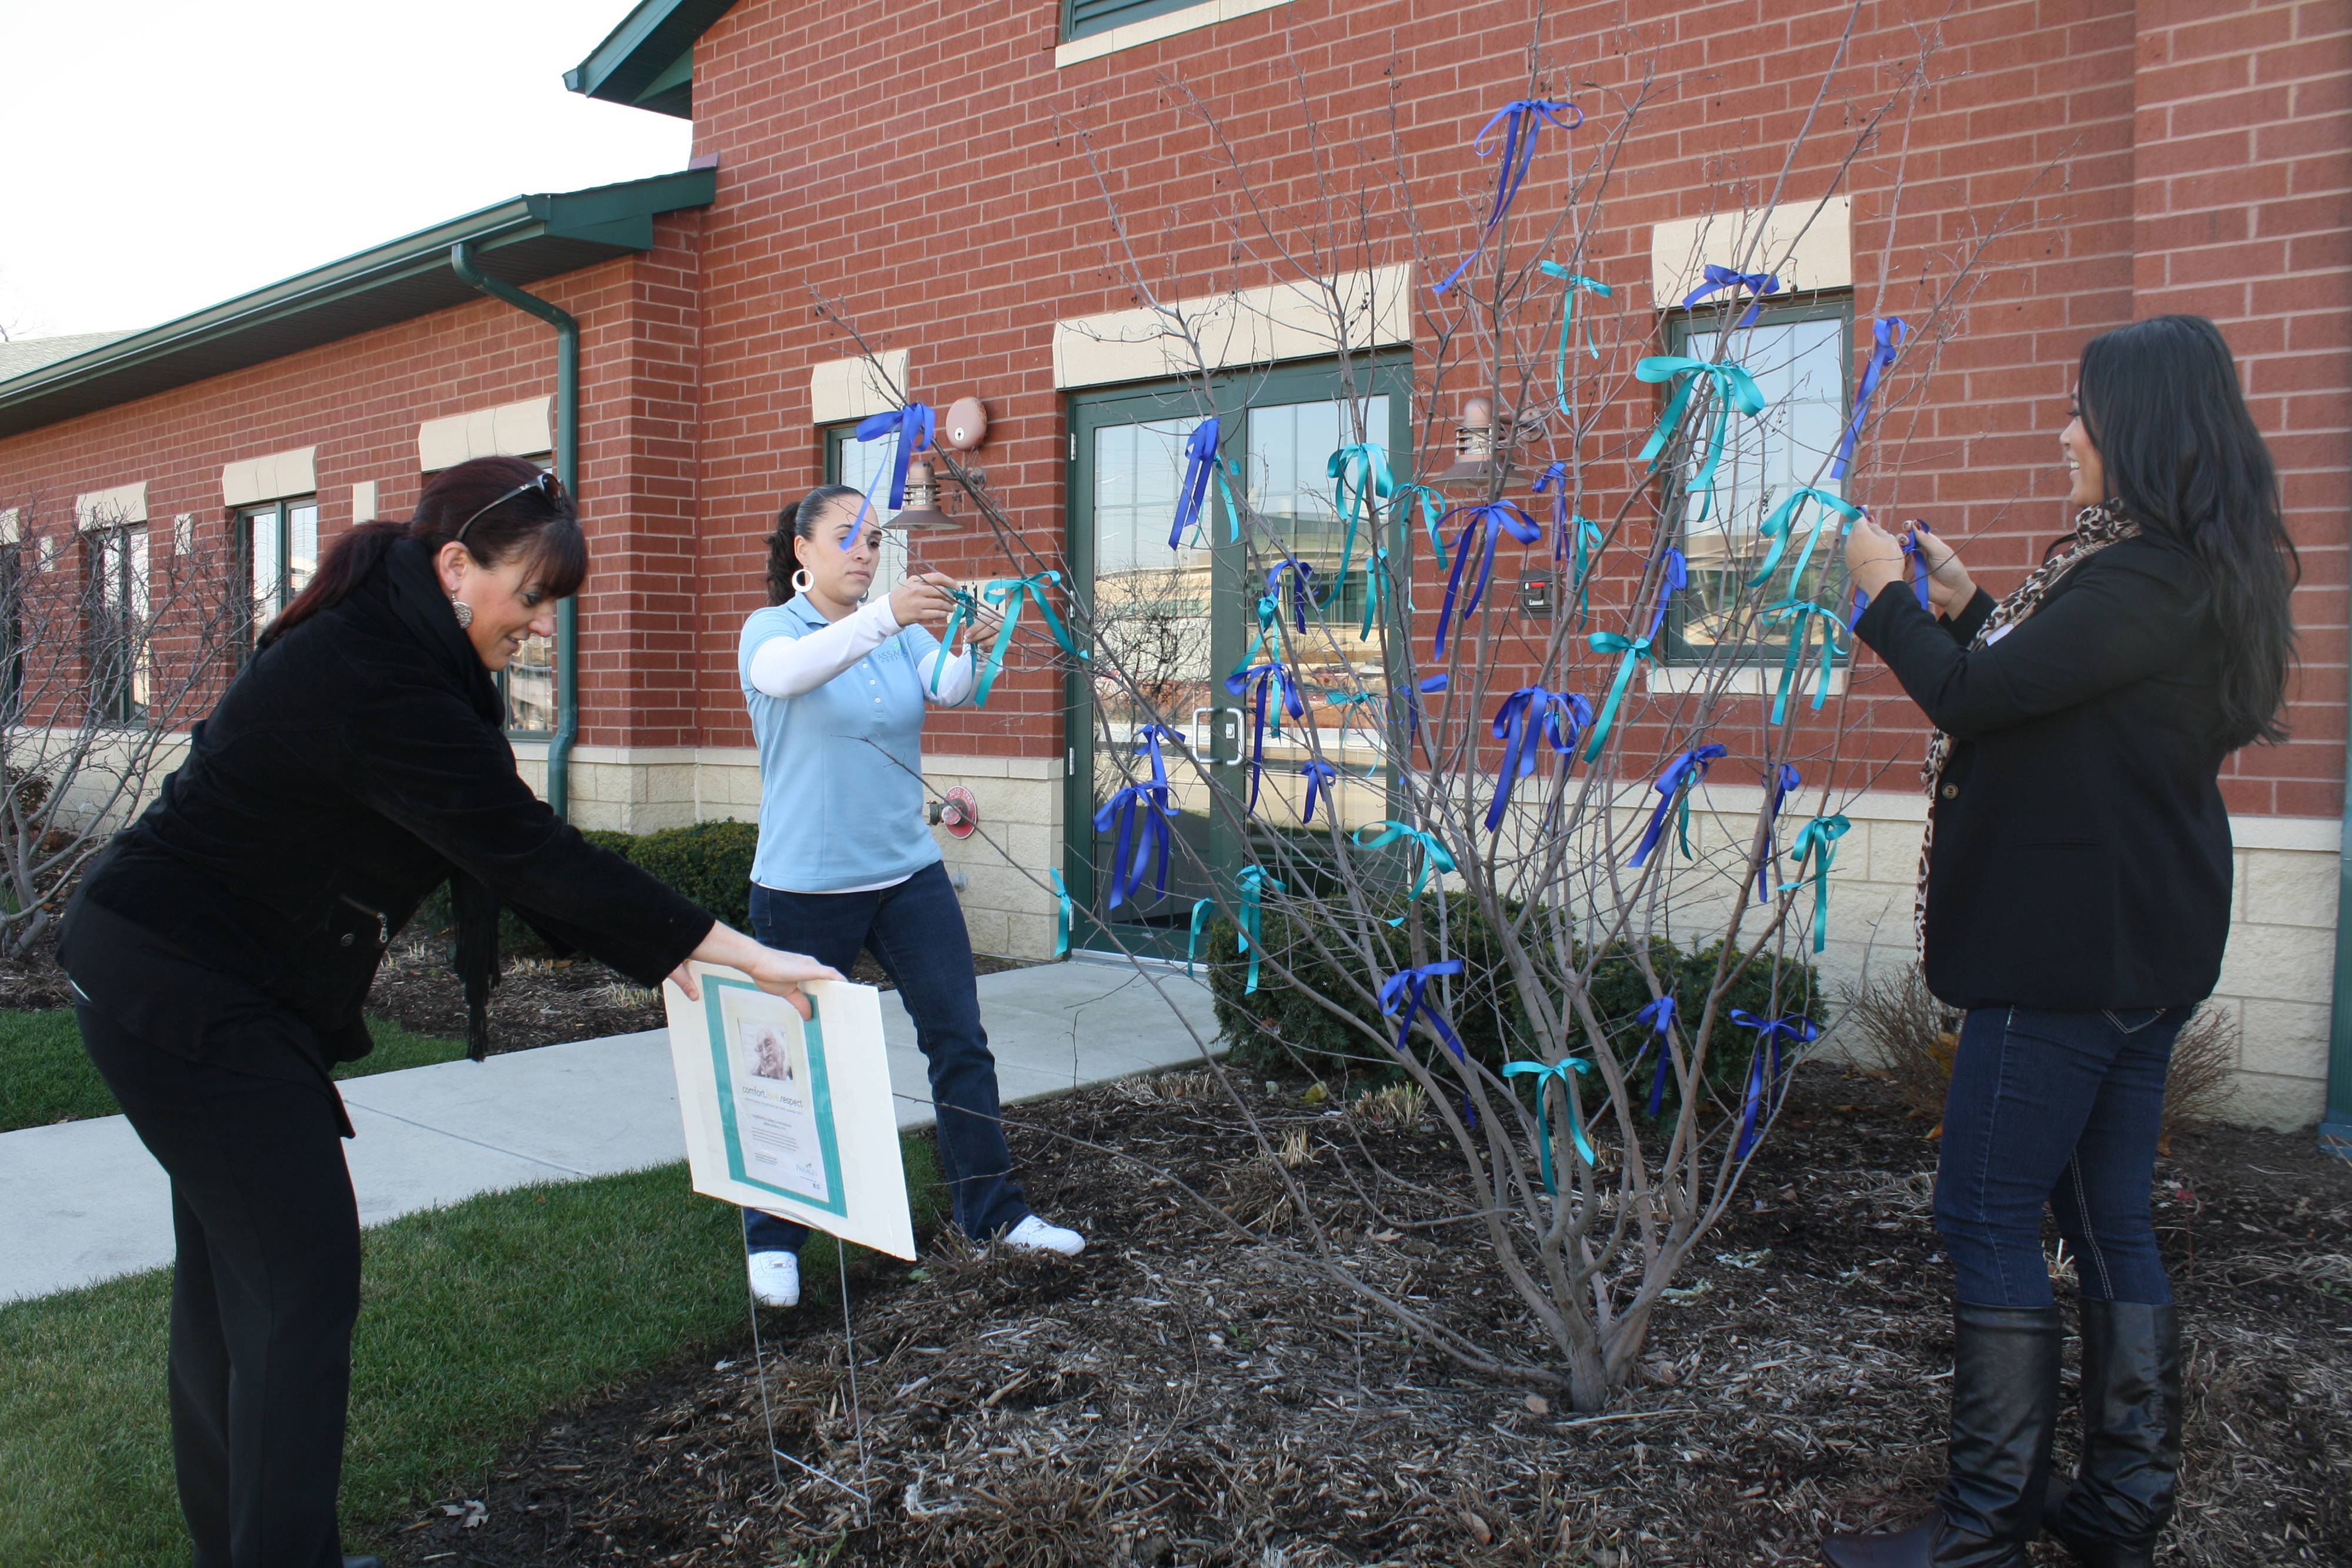 From left to right: Stacy Barclay, Carmen Velez, and Tina Prasanesouk of Passages Hospice tie ribbon to the tree outside the Passages Hospice office in Lisle in support of National Hospice Month on November 16th.